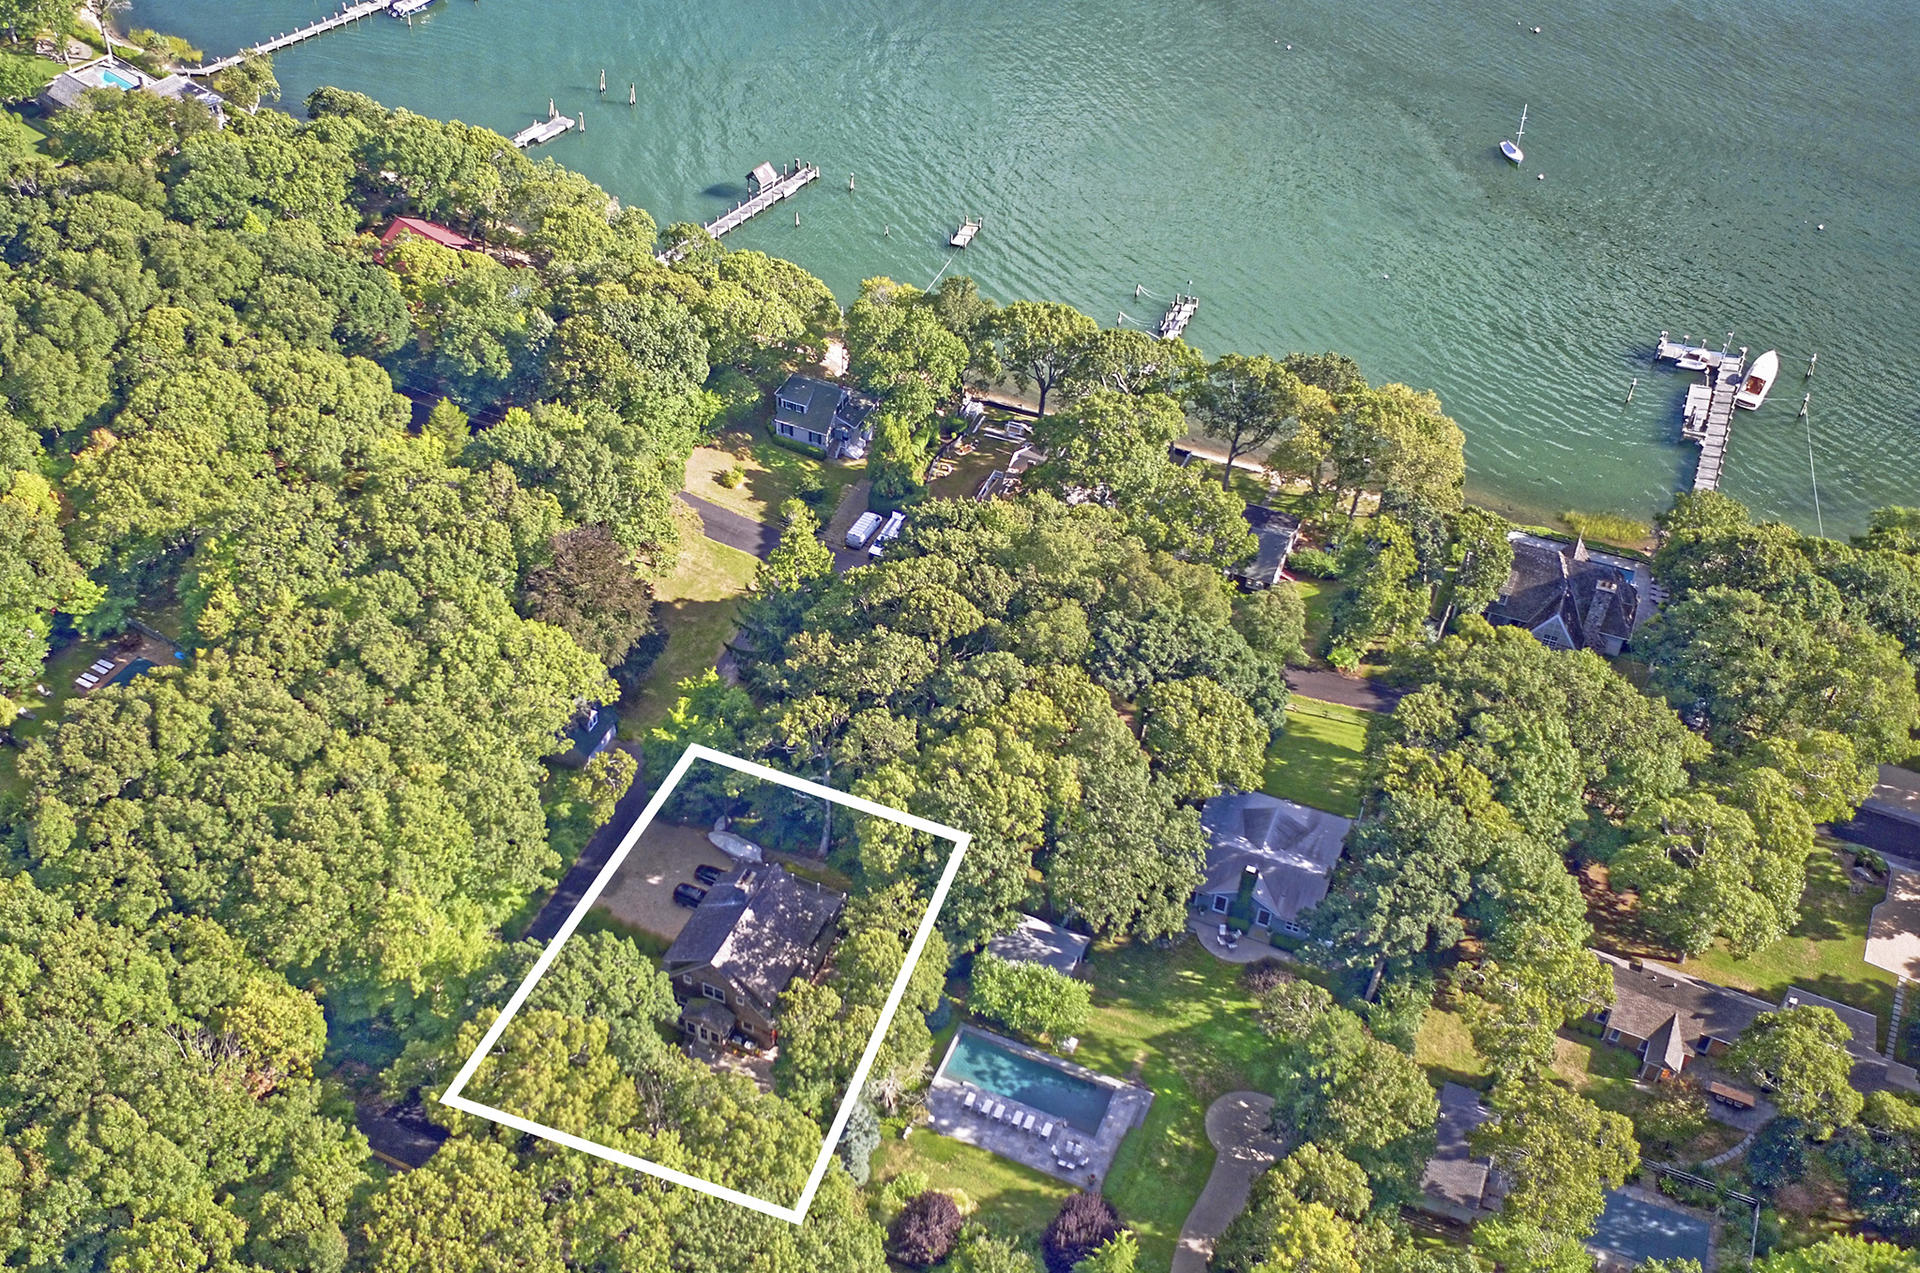 Single Family Home for Sale at Ram Island Traditional Adjacent To Preserve 62 South Ram Island Drive, Shelter Island, New York